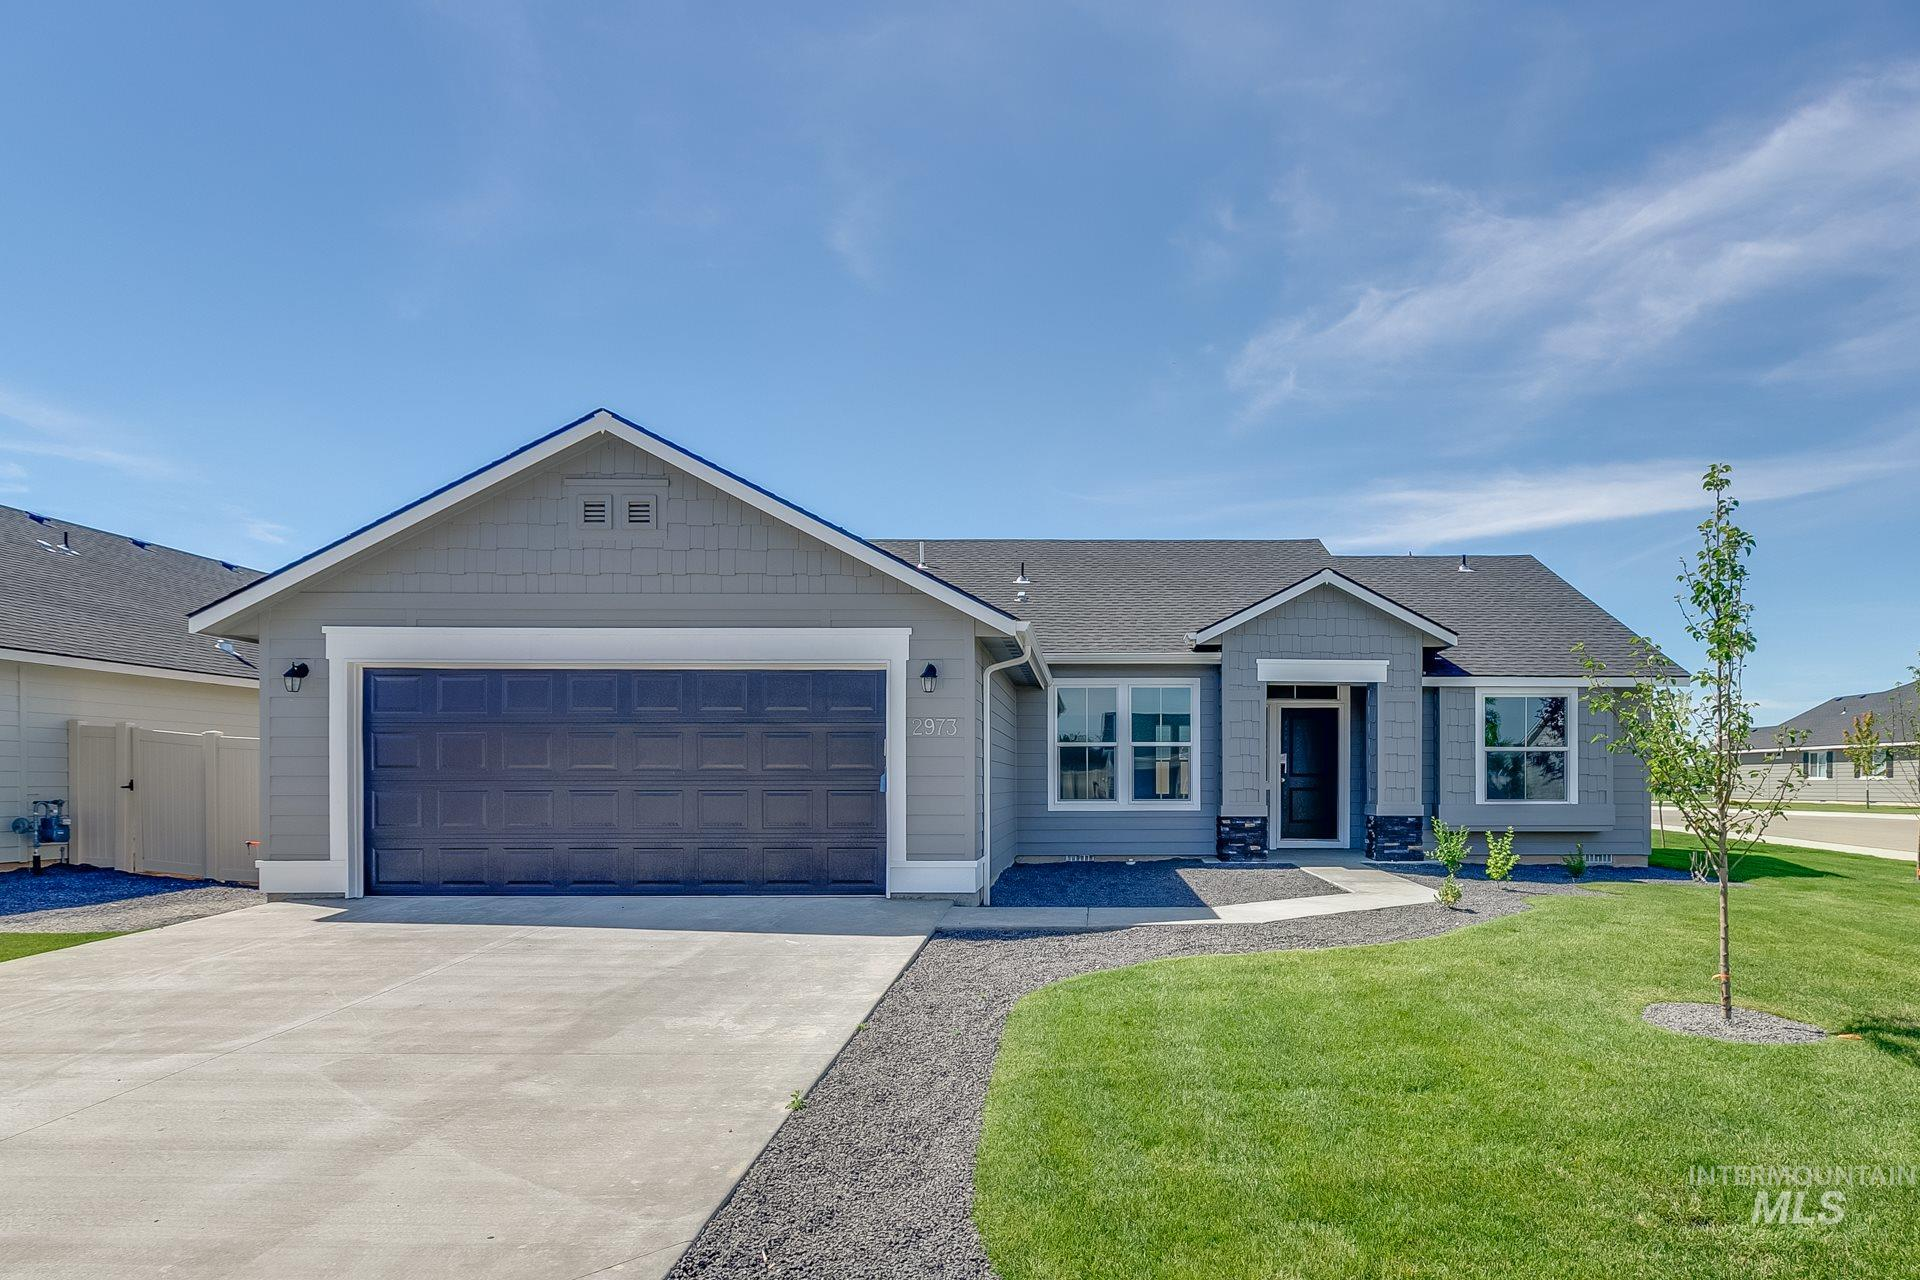 Enjoy the benefits of a single-level, split-bedroom floor plan in the Kincaid 1600. With a large living room with airy 9' ceilings, breakfast nook, and functional kitchen this home has it all! Price includes dual vanity, upgraded cabinets, Simply White 2 interior package, and more. Photos Similar. RCE-923.